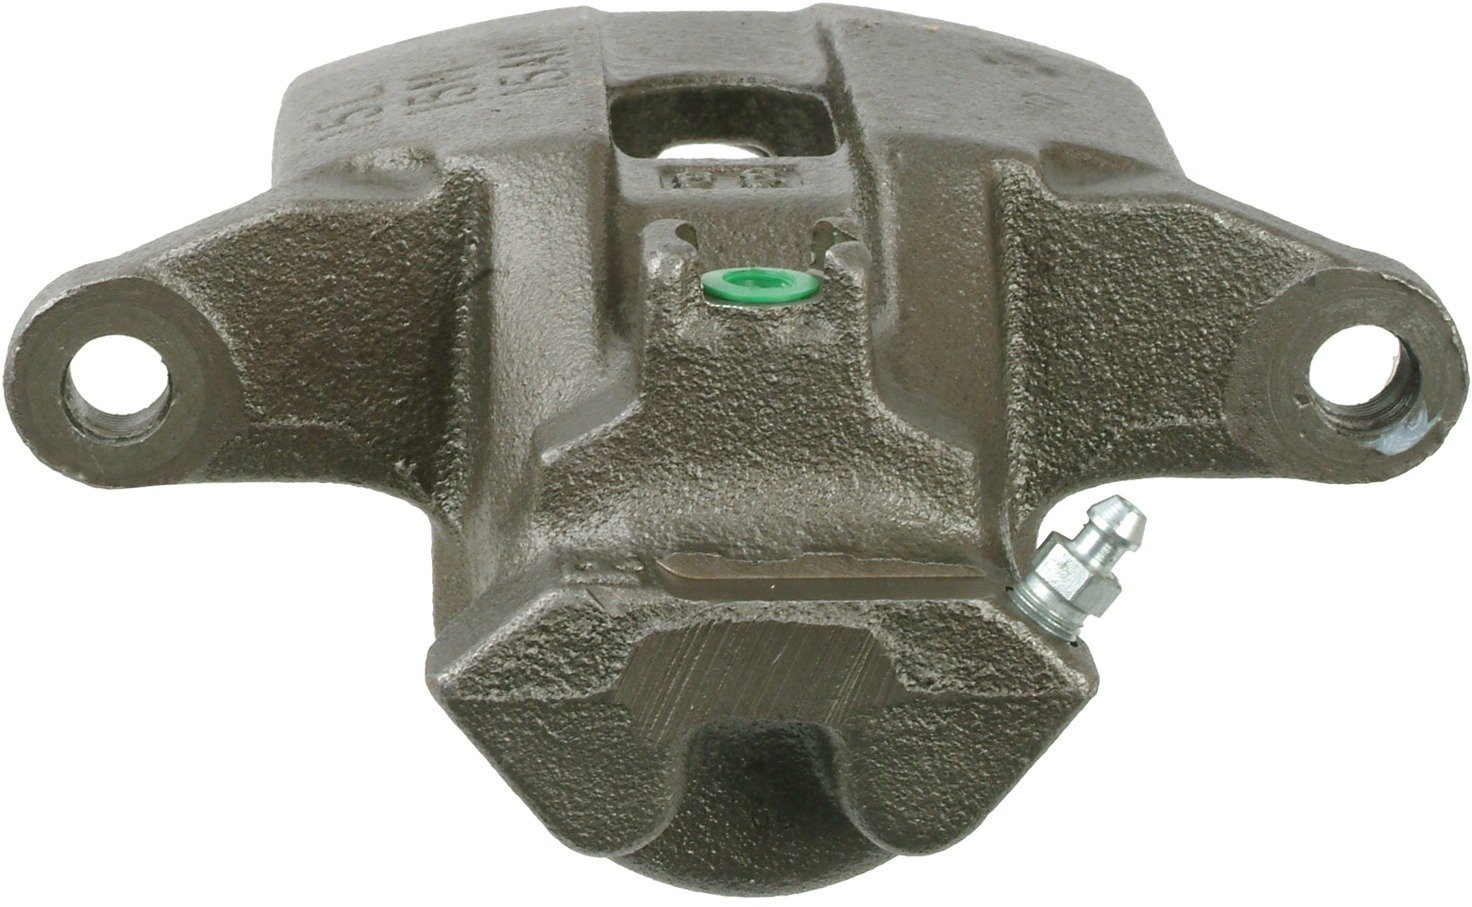 Cardone 18-8031 Remanufactured Domestic Friction Ready (Unloaded) Brake Caliper by A1 Cardone